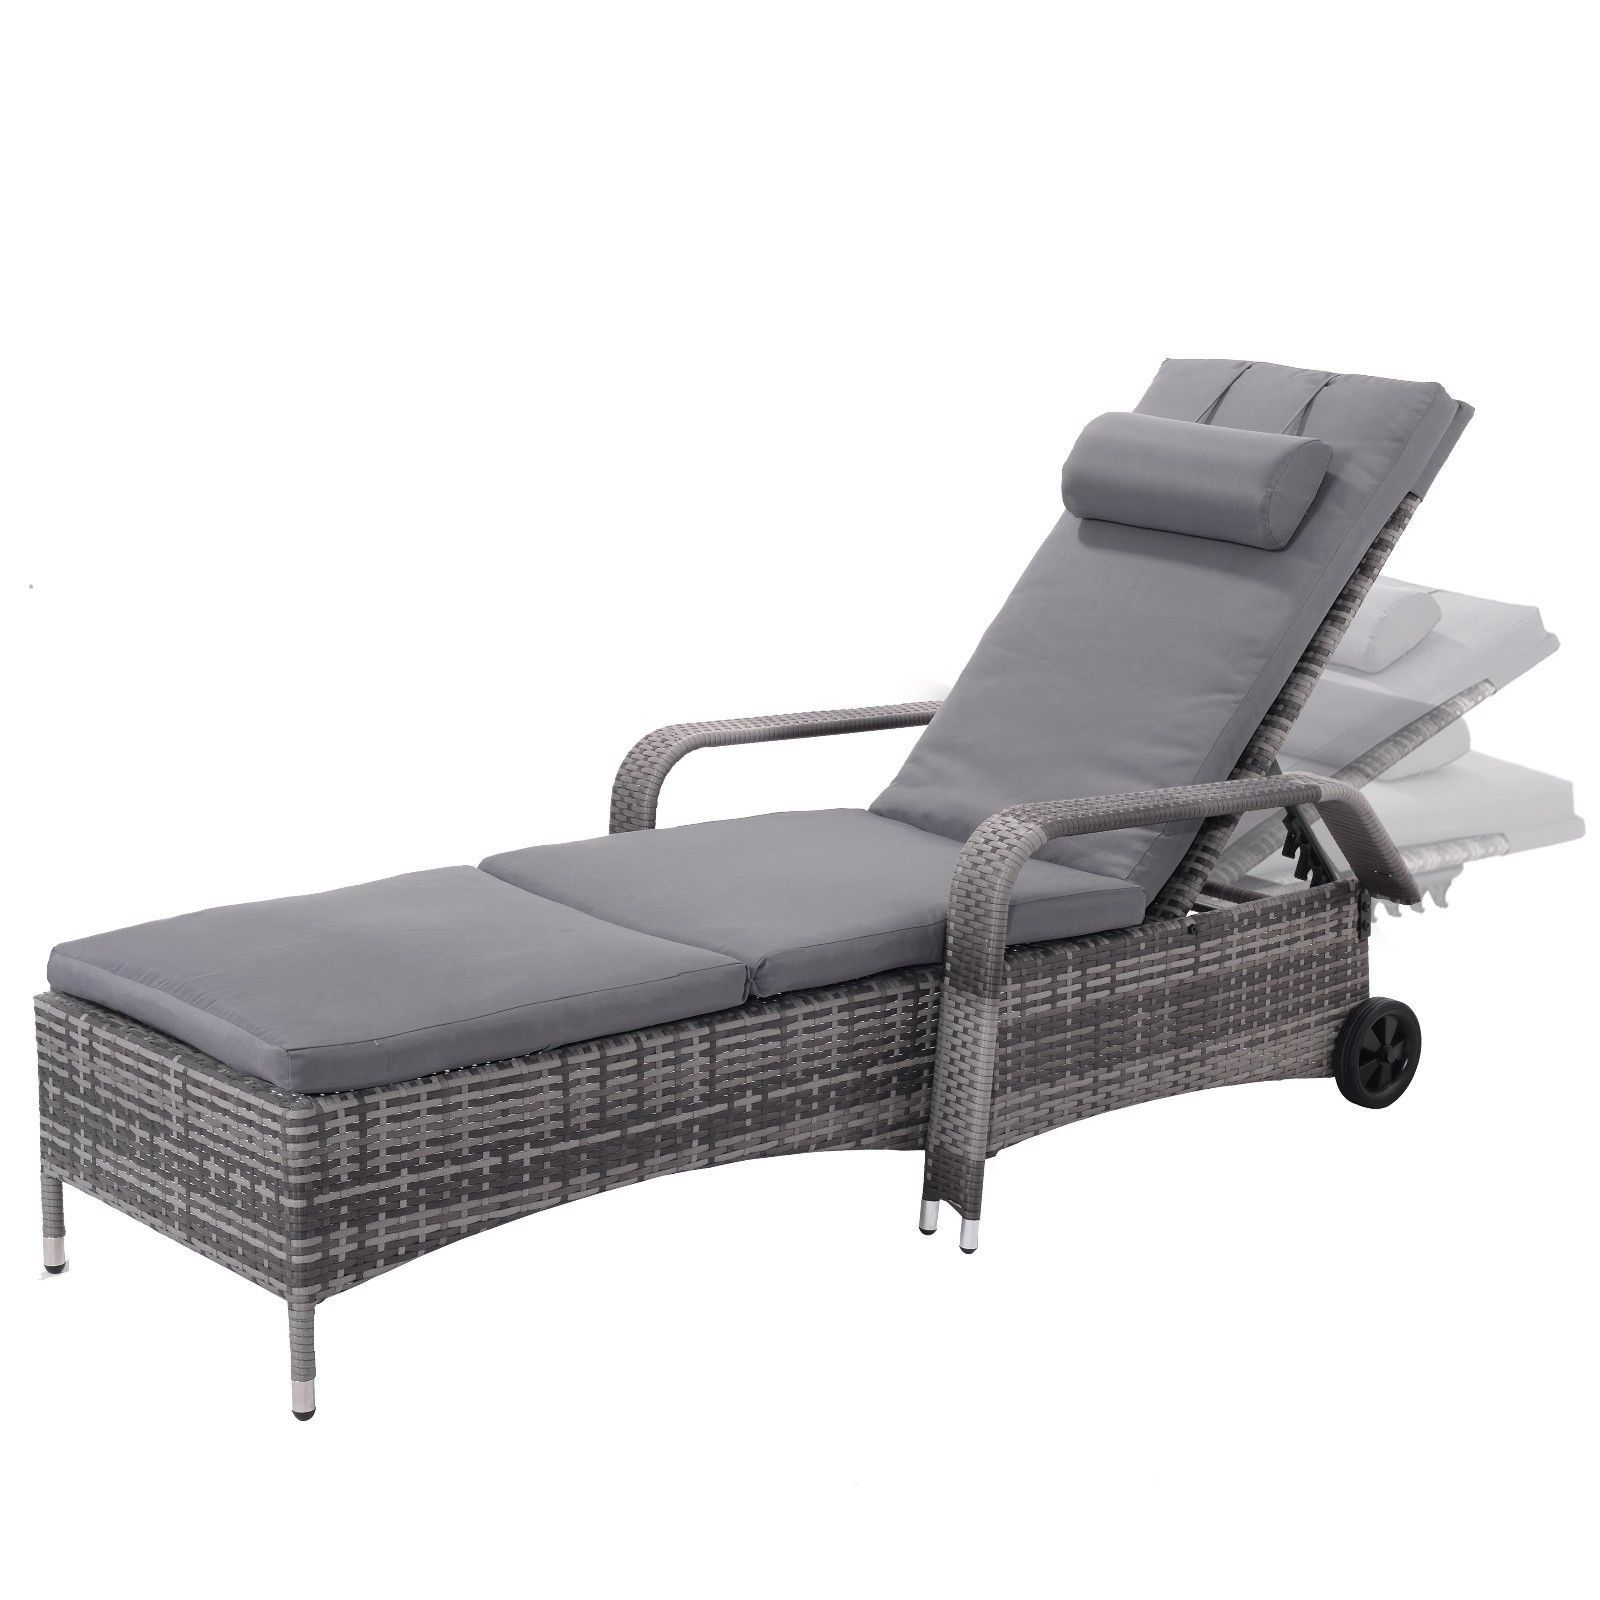 Outdoor Adjustable Chaise Lounge Recliner Chair